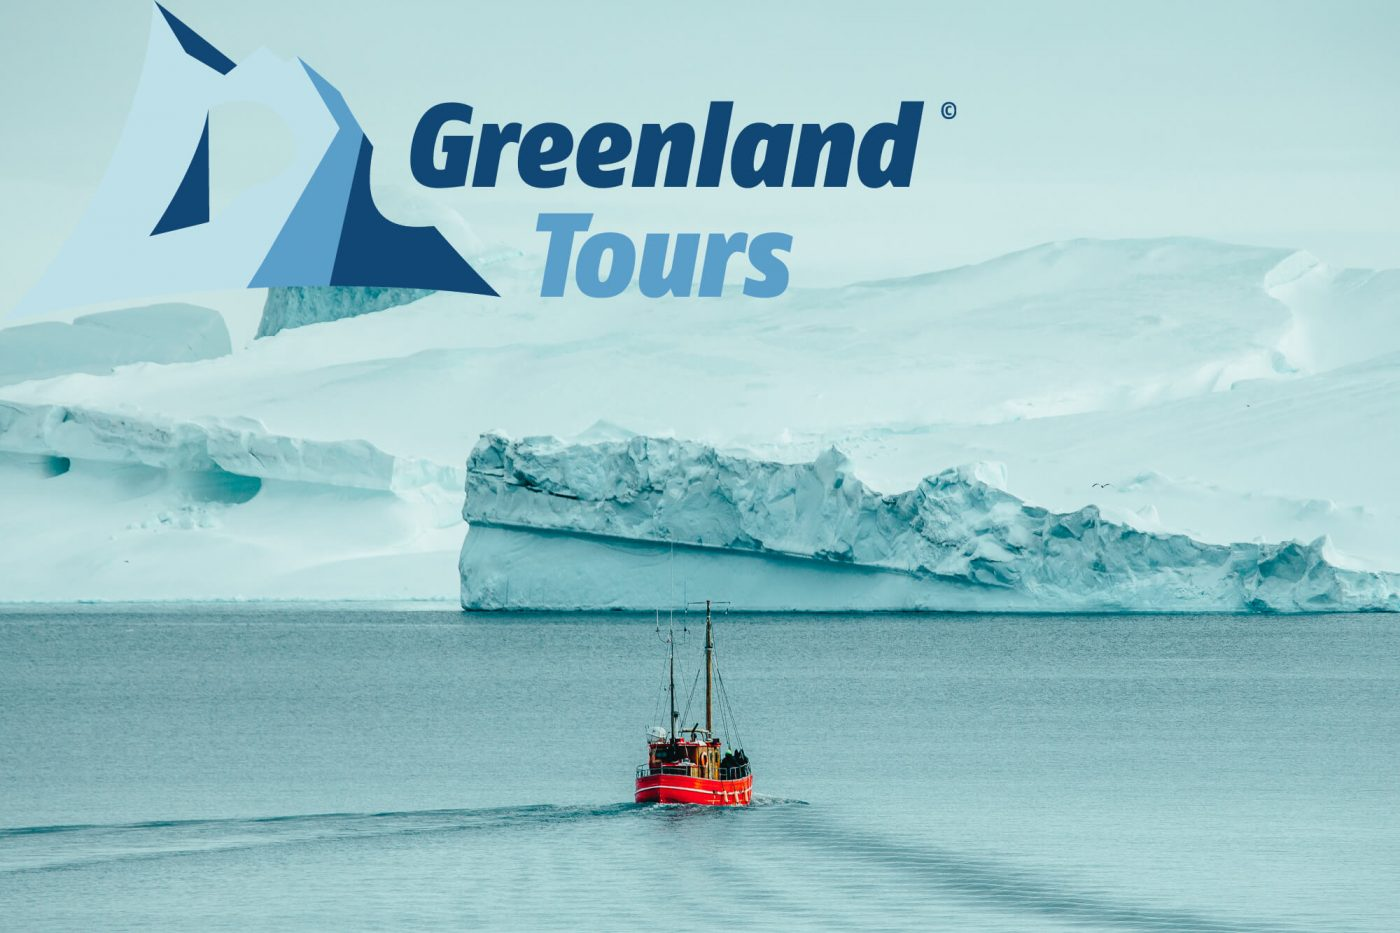 Best of the West-GreenlandTours42_logo